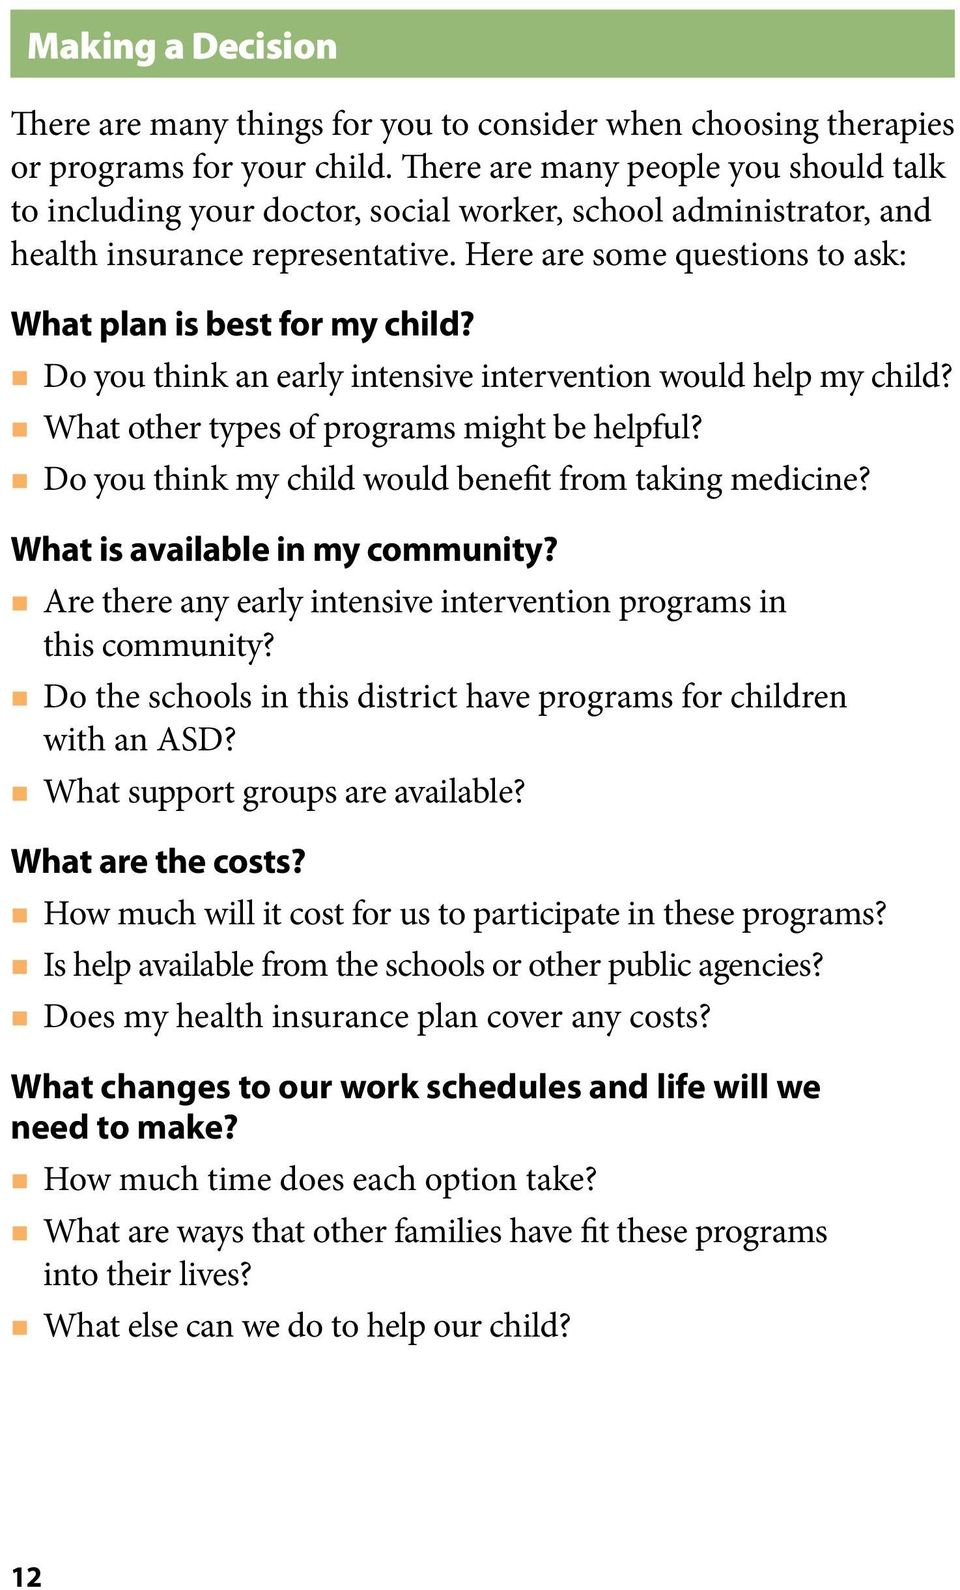 Here are some questions to ask: What plan is best for my child? Do you think an early intensive intervention would help my child? What other types of programs might be helpful?